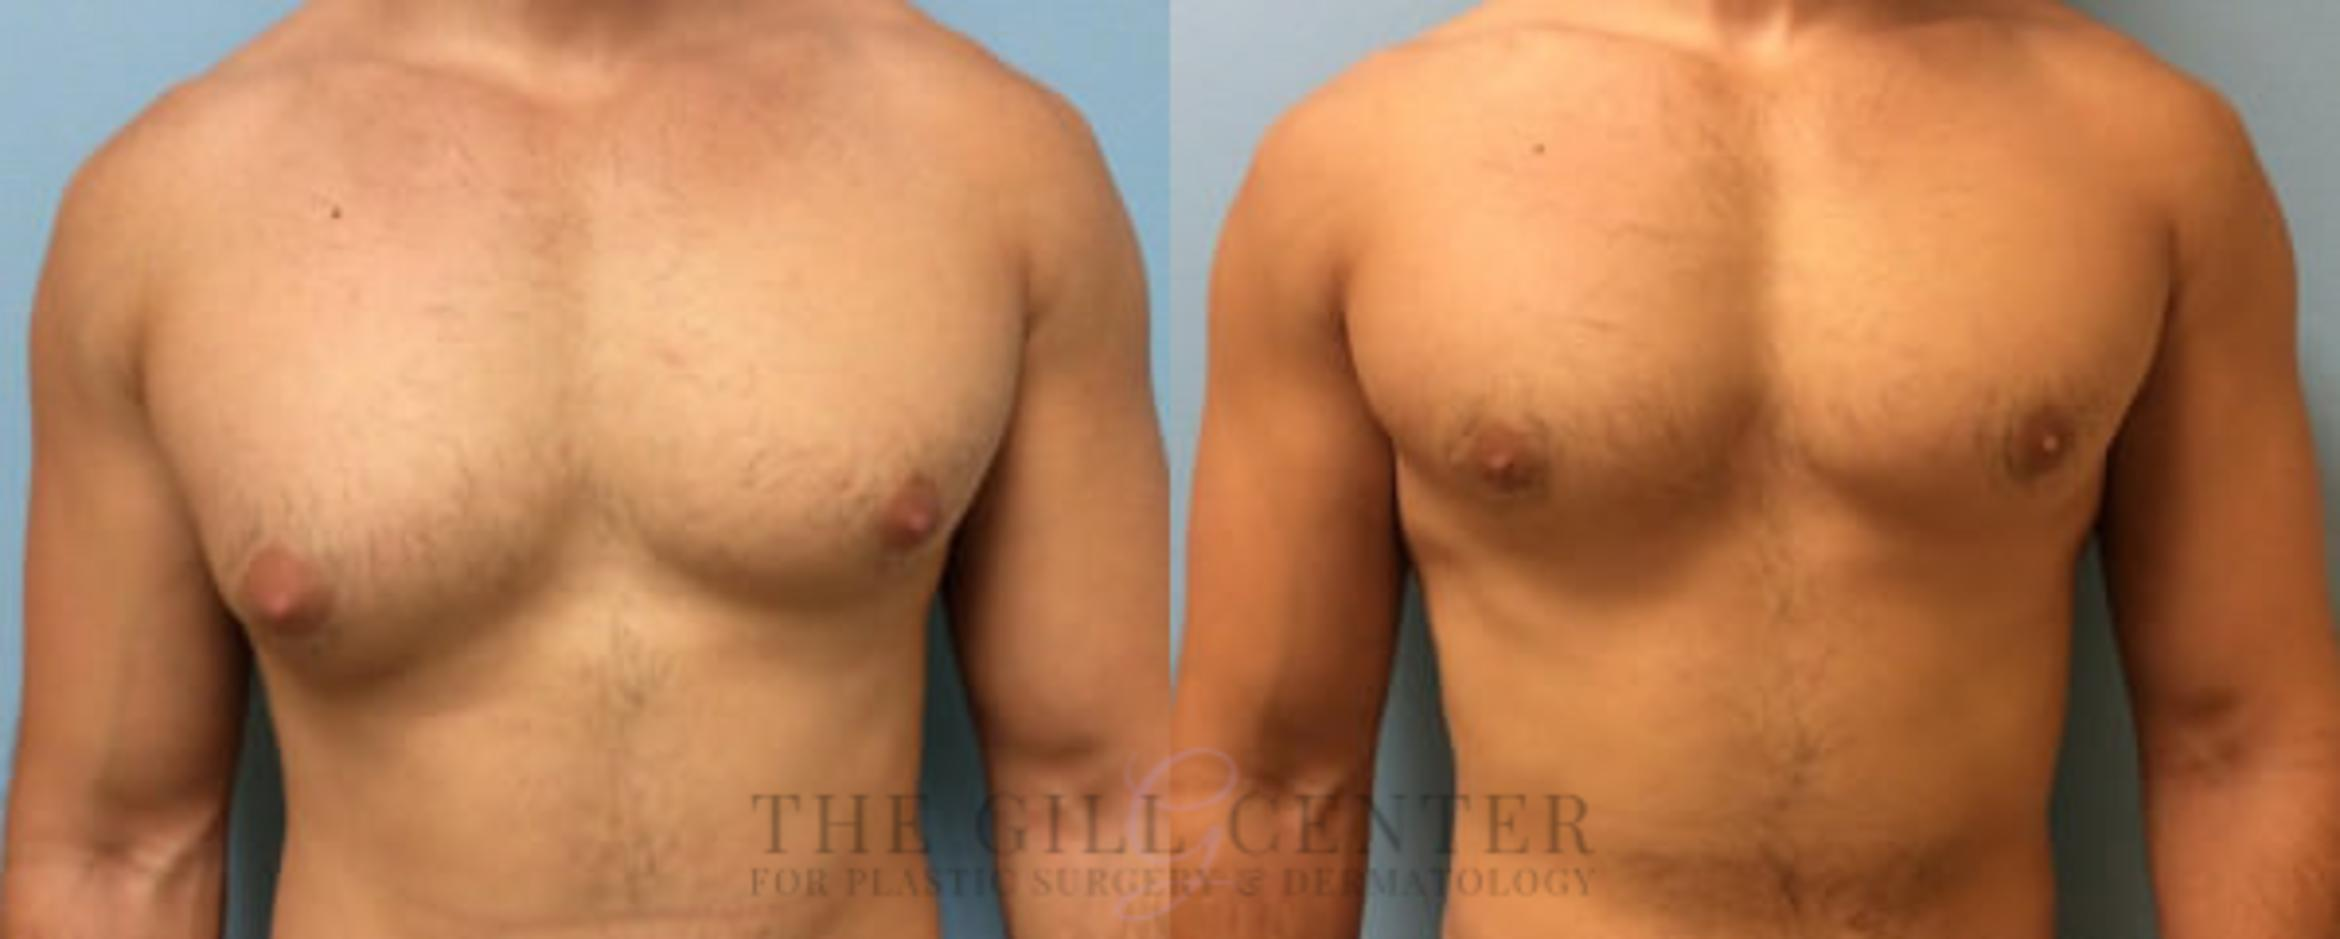 Gynecomastia Case 139 Before & After Front | Shenandoah, TX | The Gill Center for Plastic Surgery and Dermatology